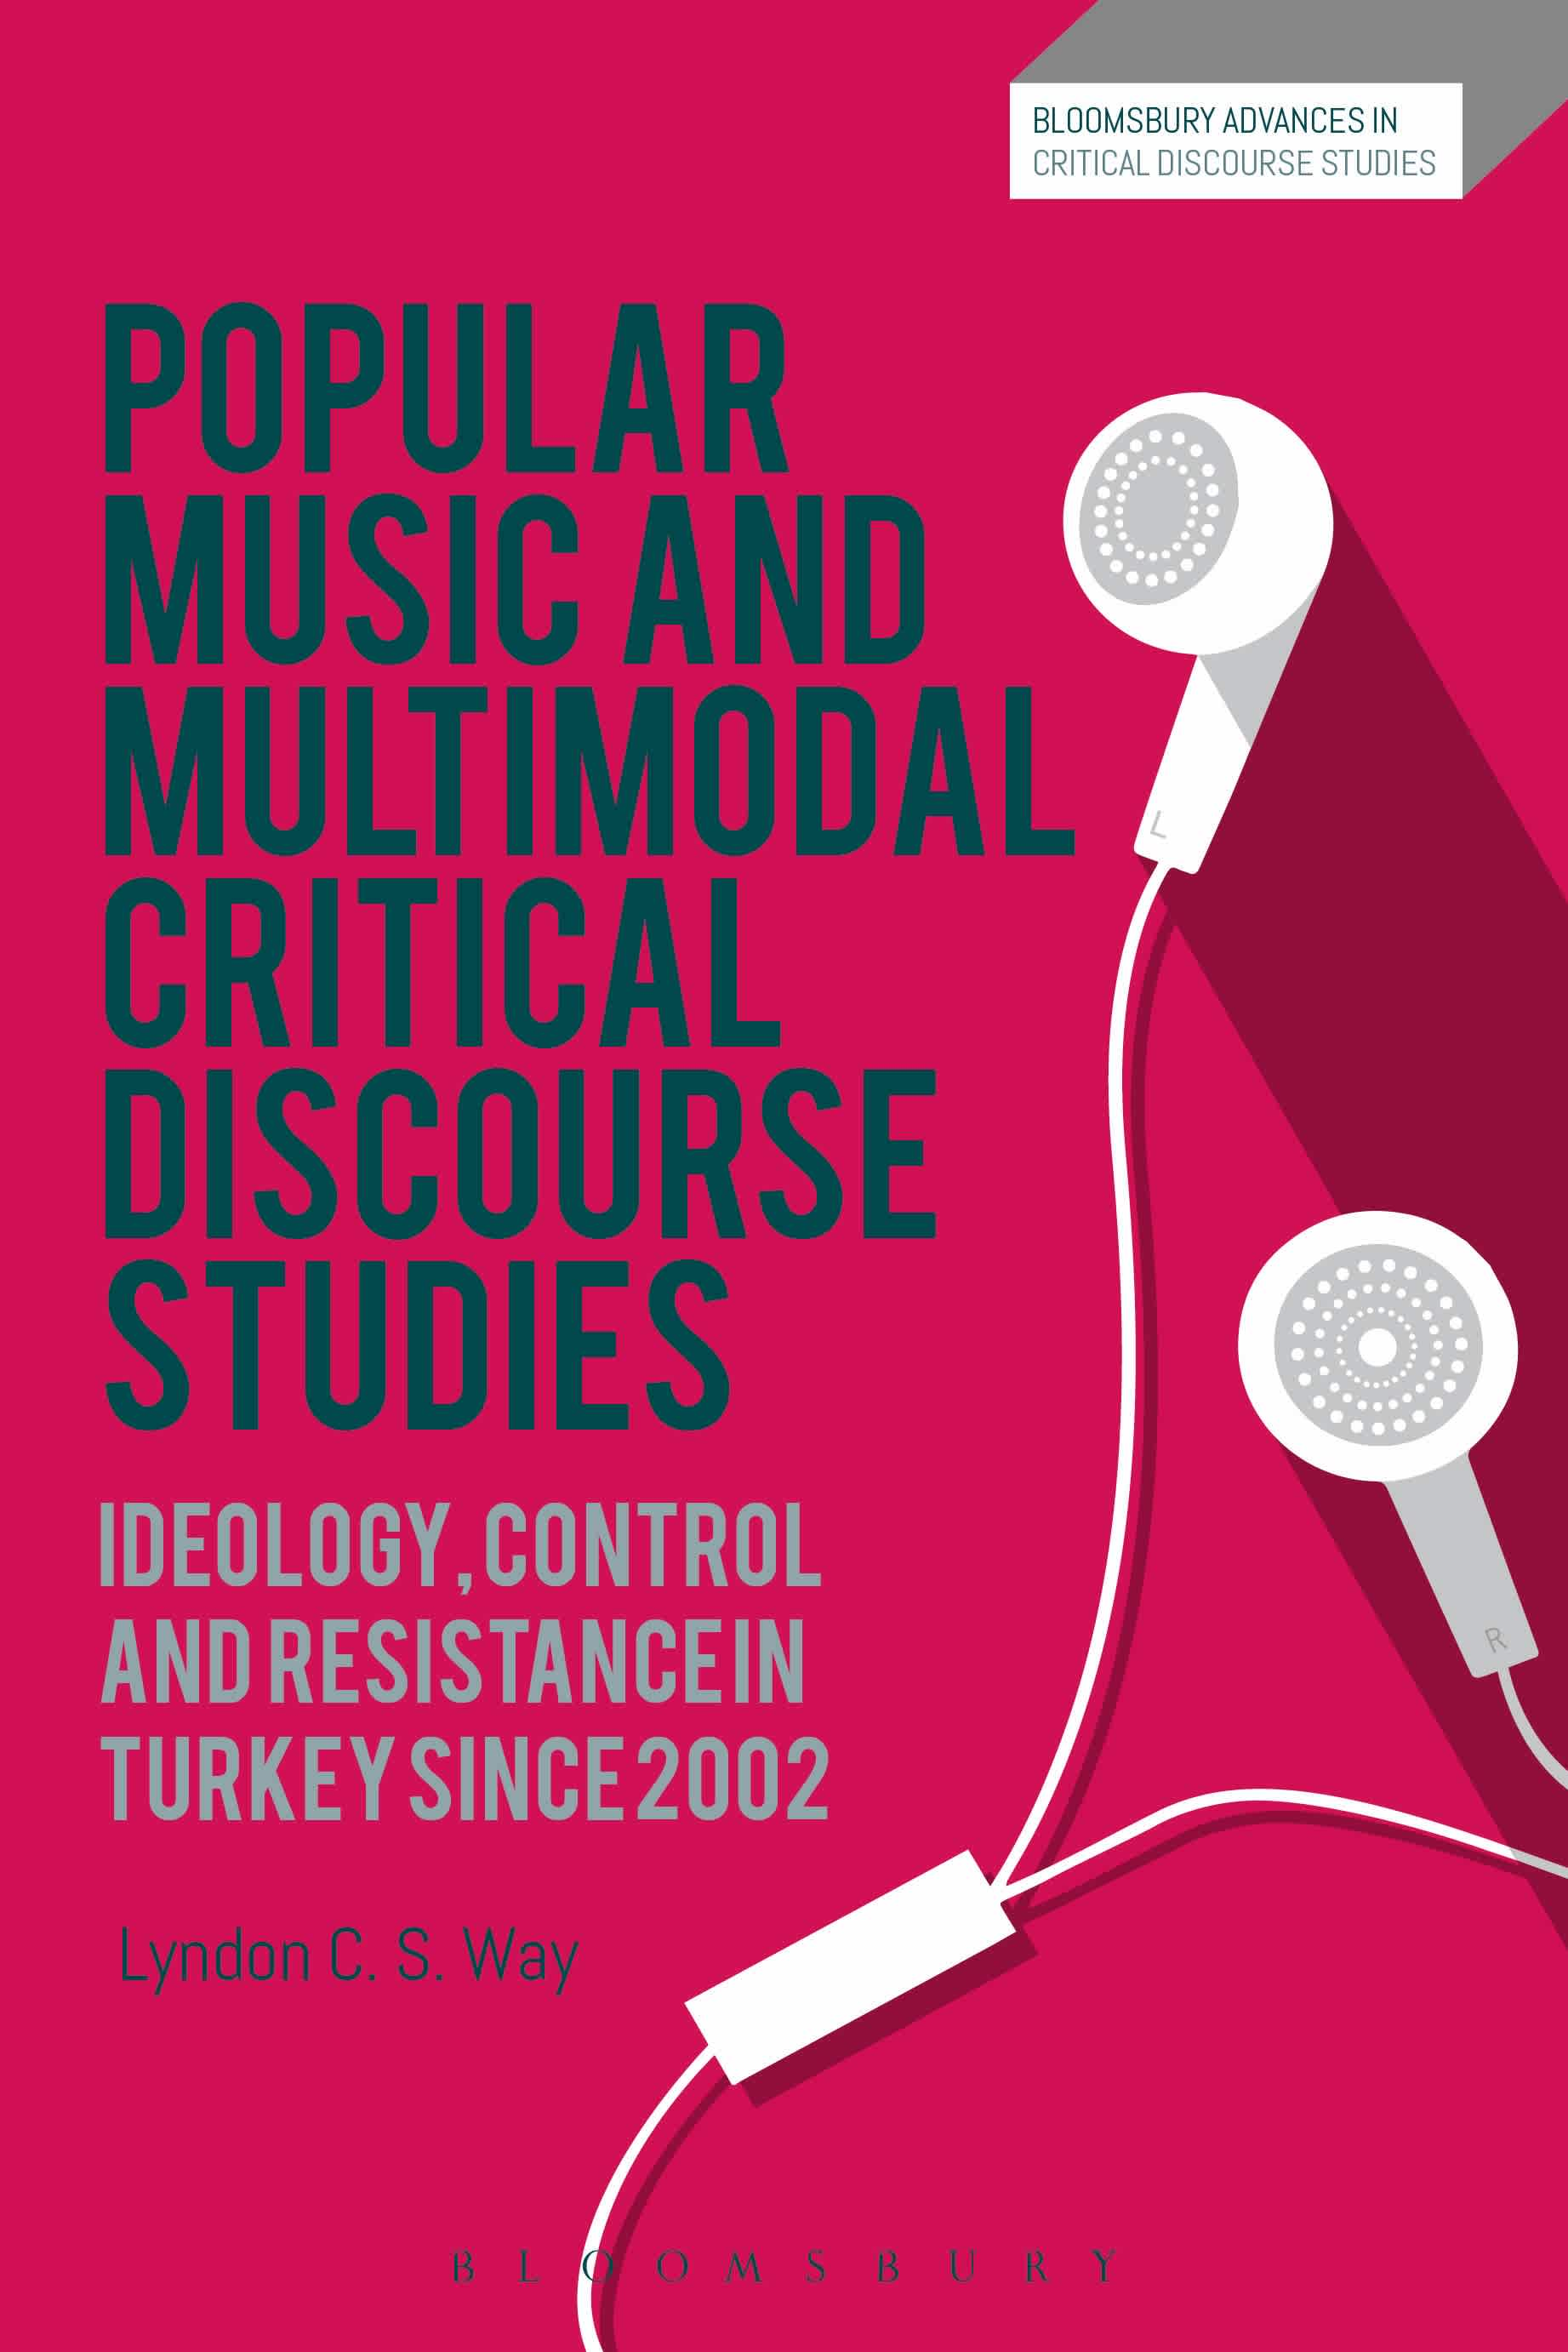 Popular Music and Multimodal Critical Discourse Studies